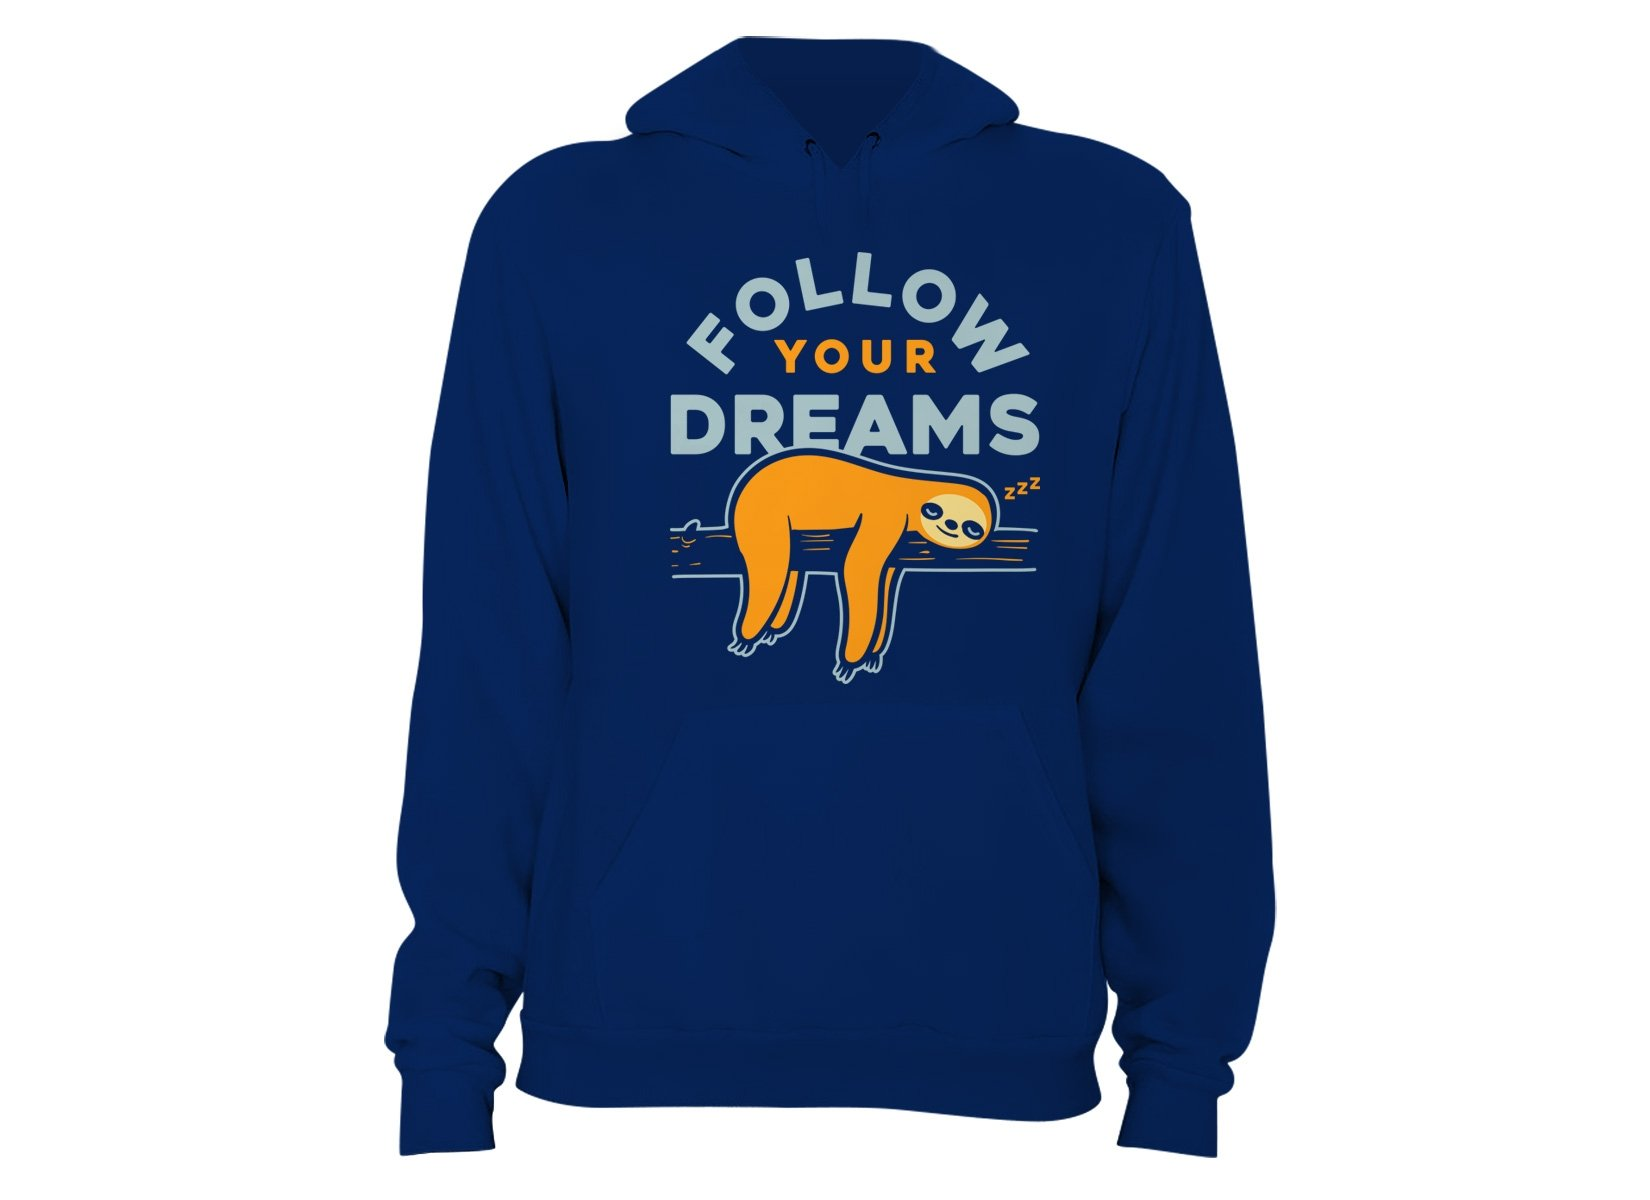 Follow Your Dreams on Hoodie